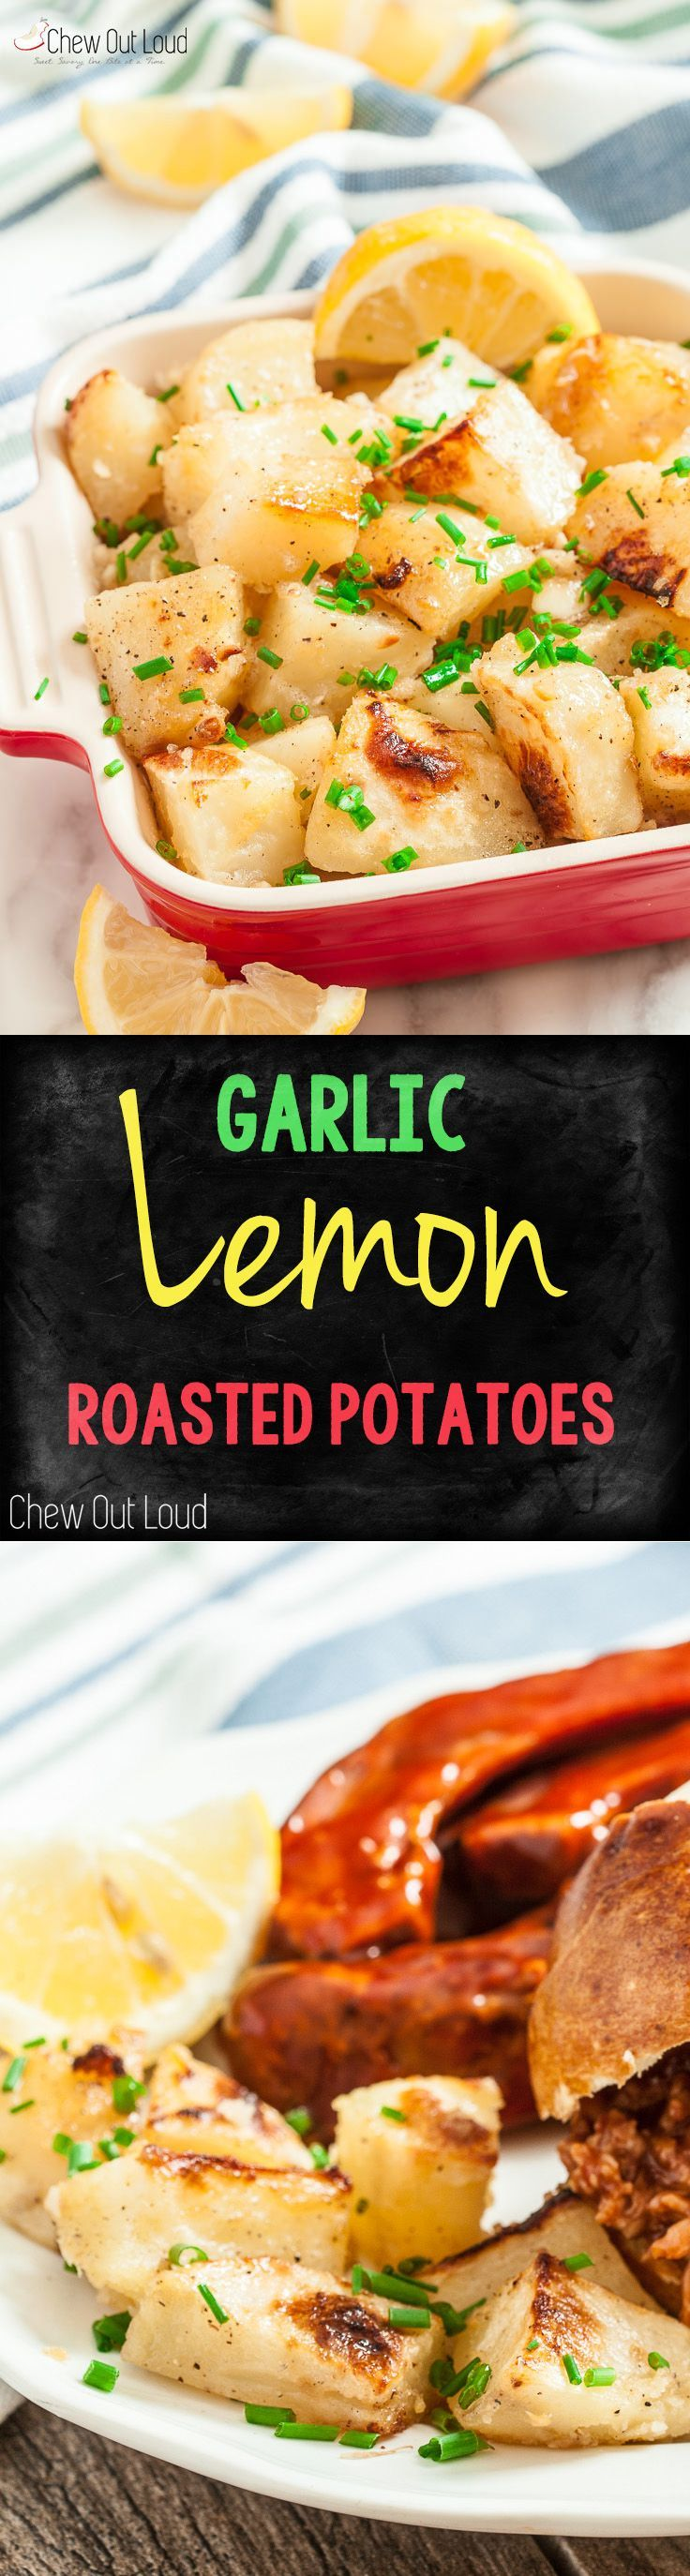 Garlic Lemon Roasted Potatoes. So easy, healthy, flavorful, and lively! Pairs well with any meal.